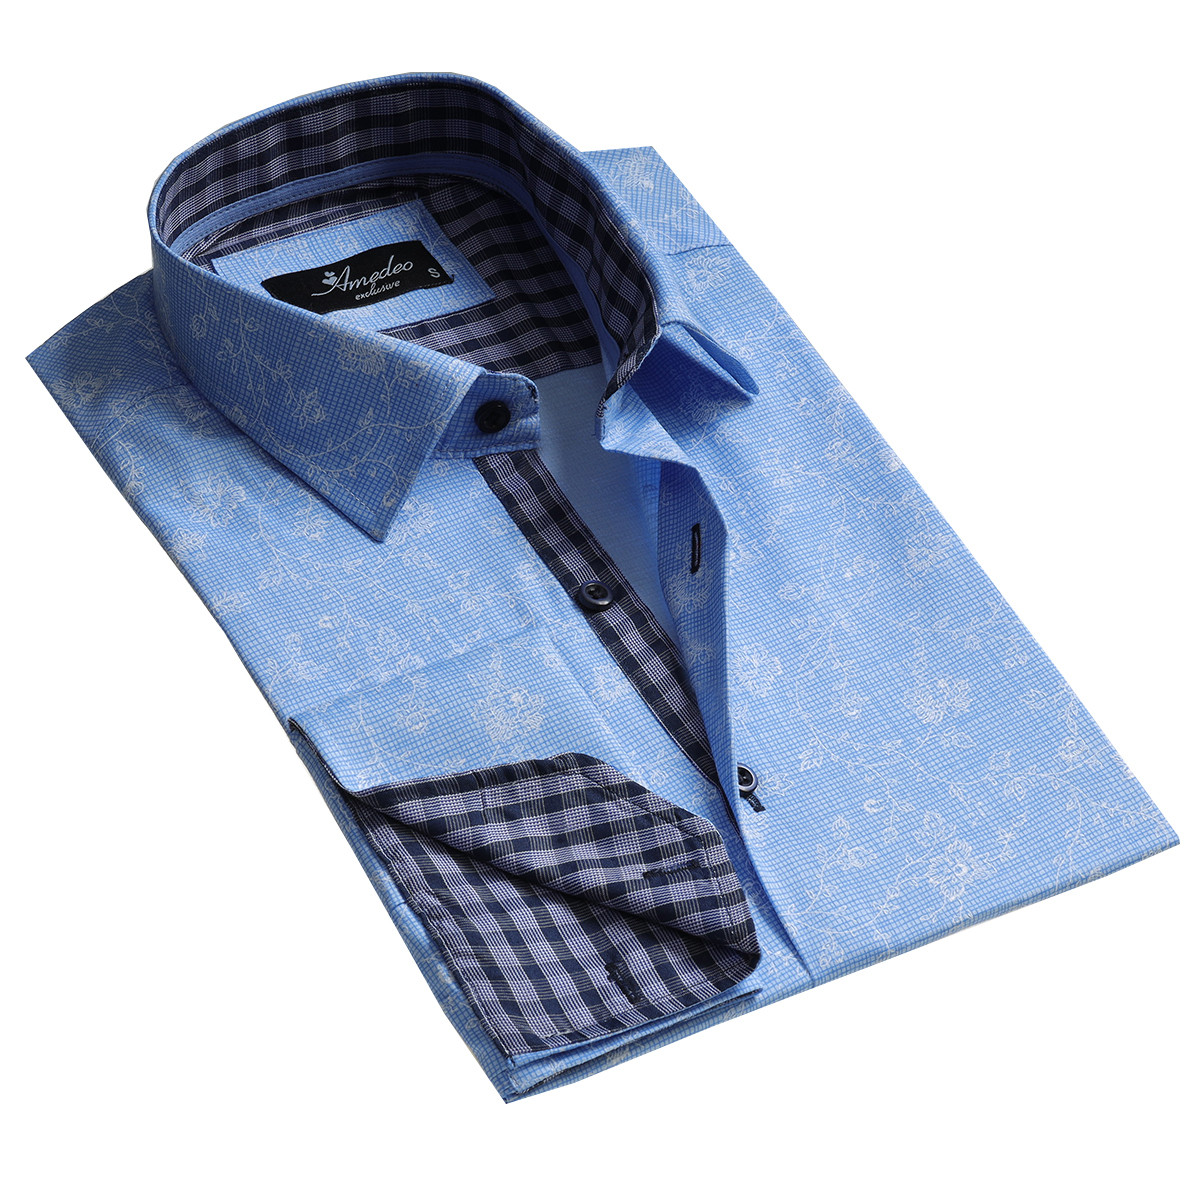 European Made & Designed Reversible Cuff Premium French Cuff Dress Shirt - light blue floral